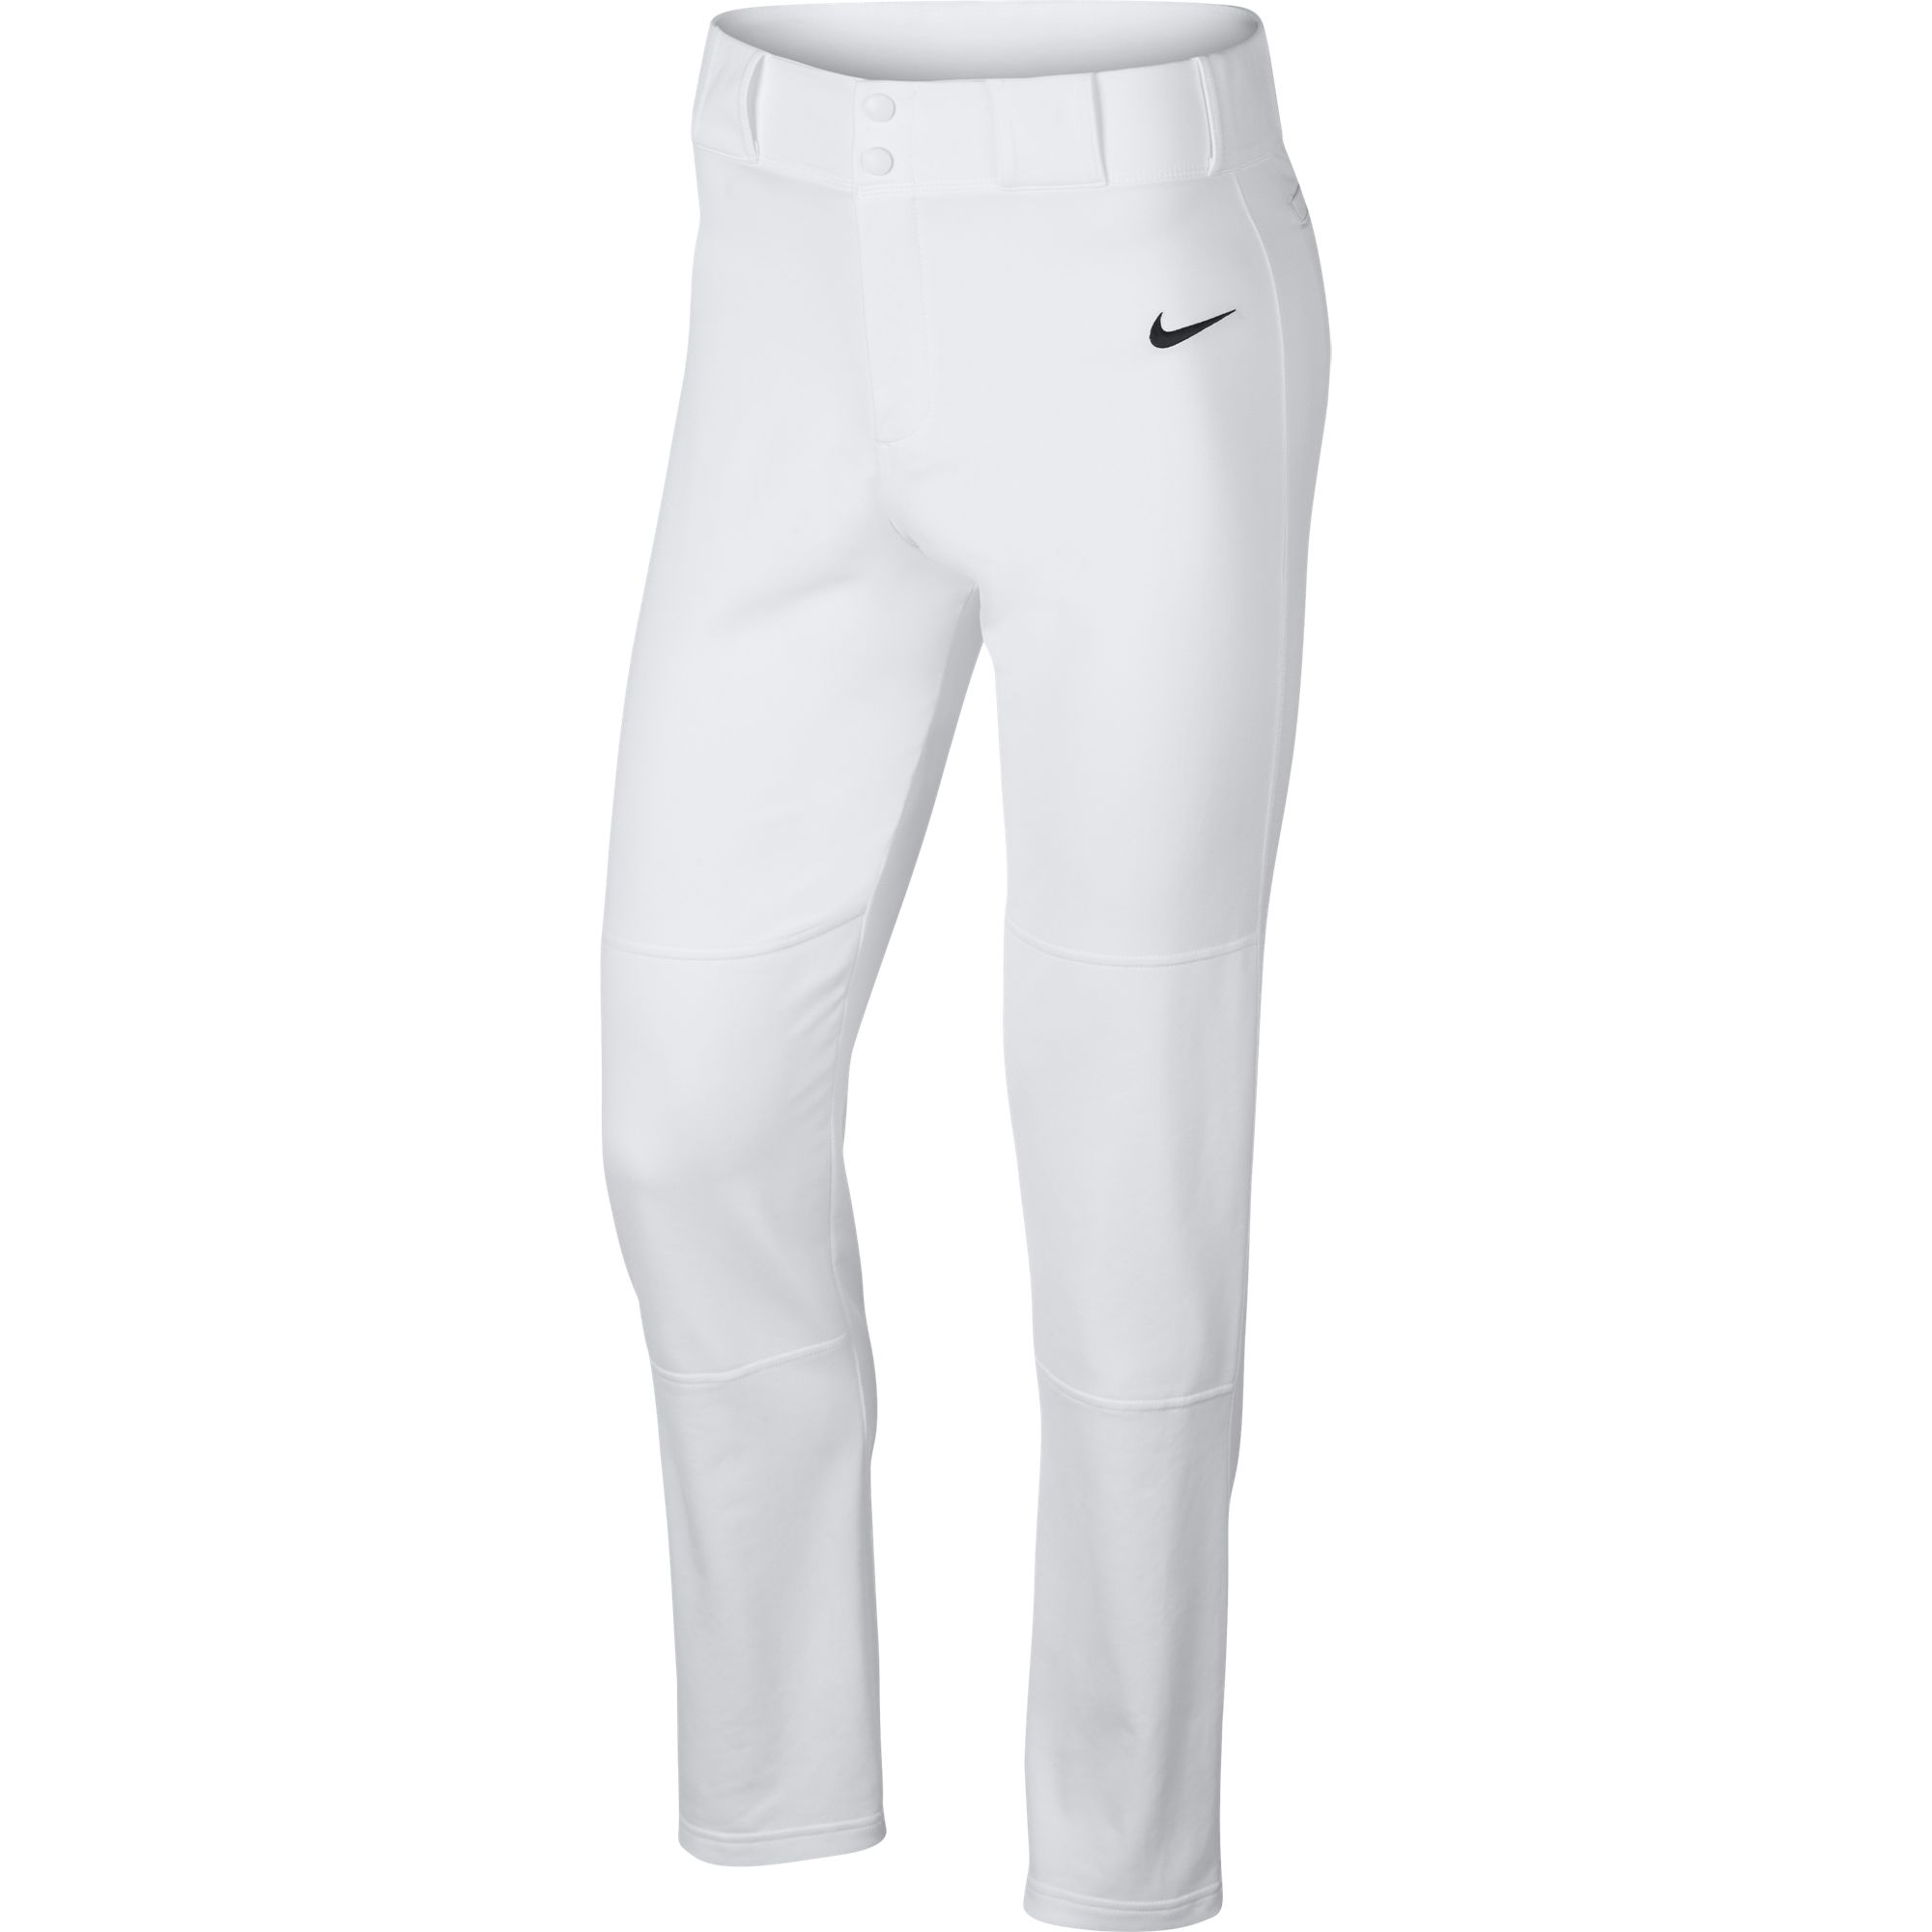 Men's Core Baseball Pant, White, swatch